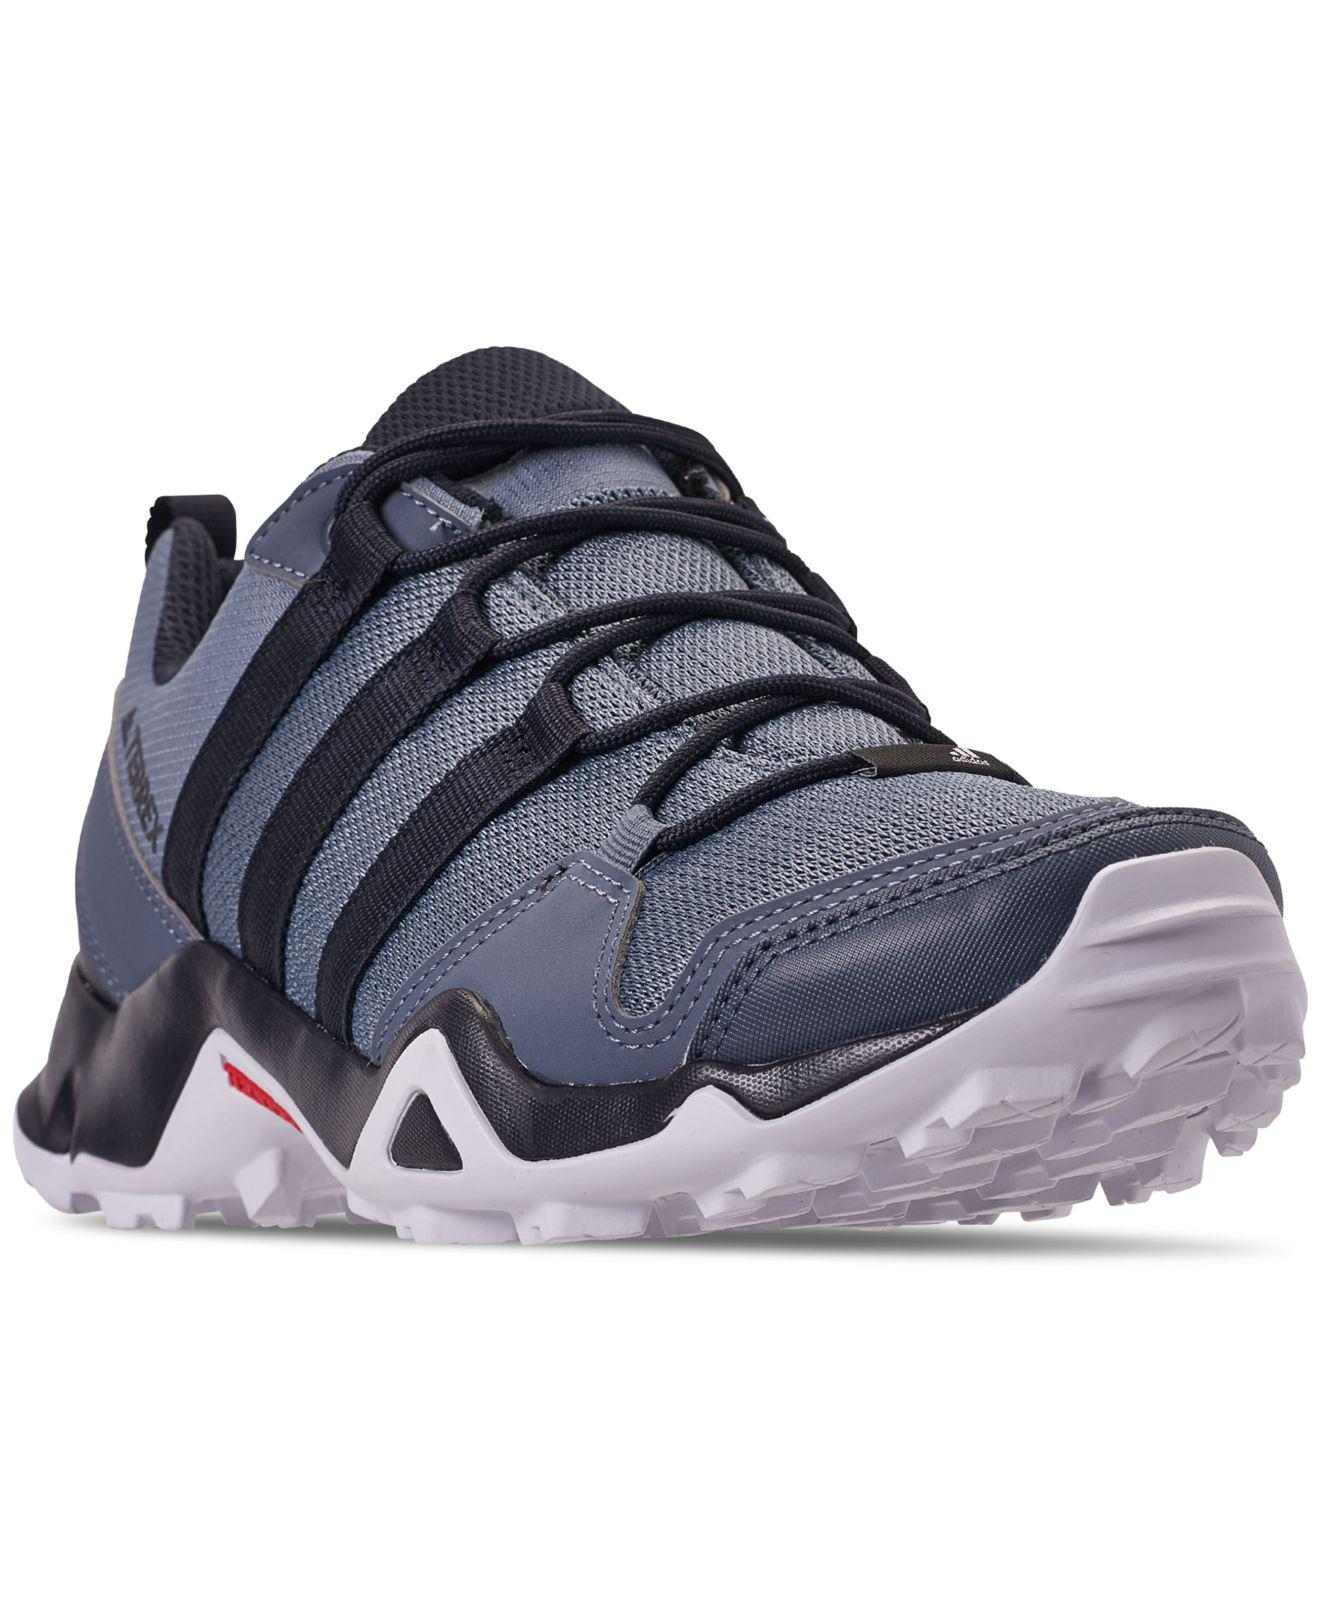 a61727bfe1ed2 Lyst - adidas Terrex Ax2r Trail Sneakers From Finish Line in Blue